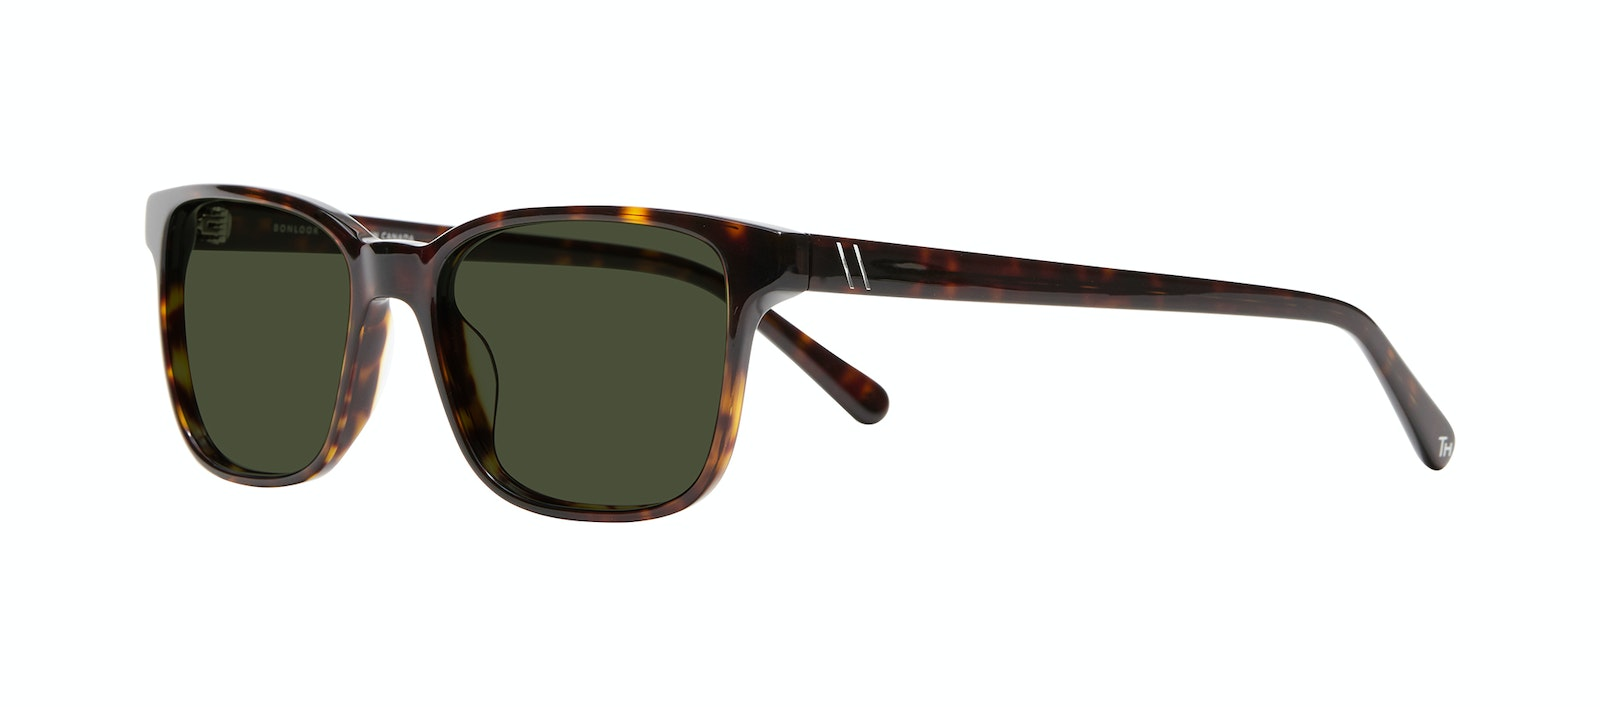 Affordable Fashion Glasses Square Sunglasses Men Risk Tortoise Tilt